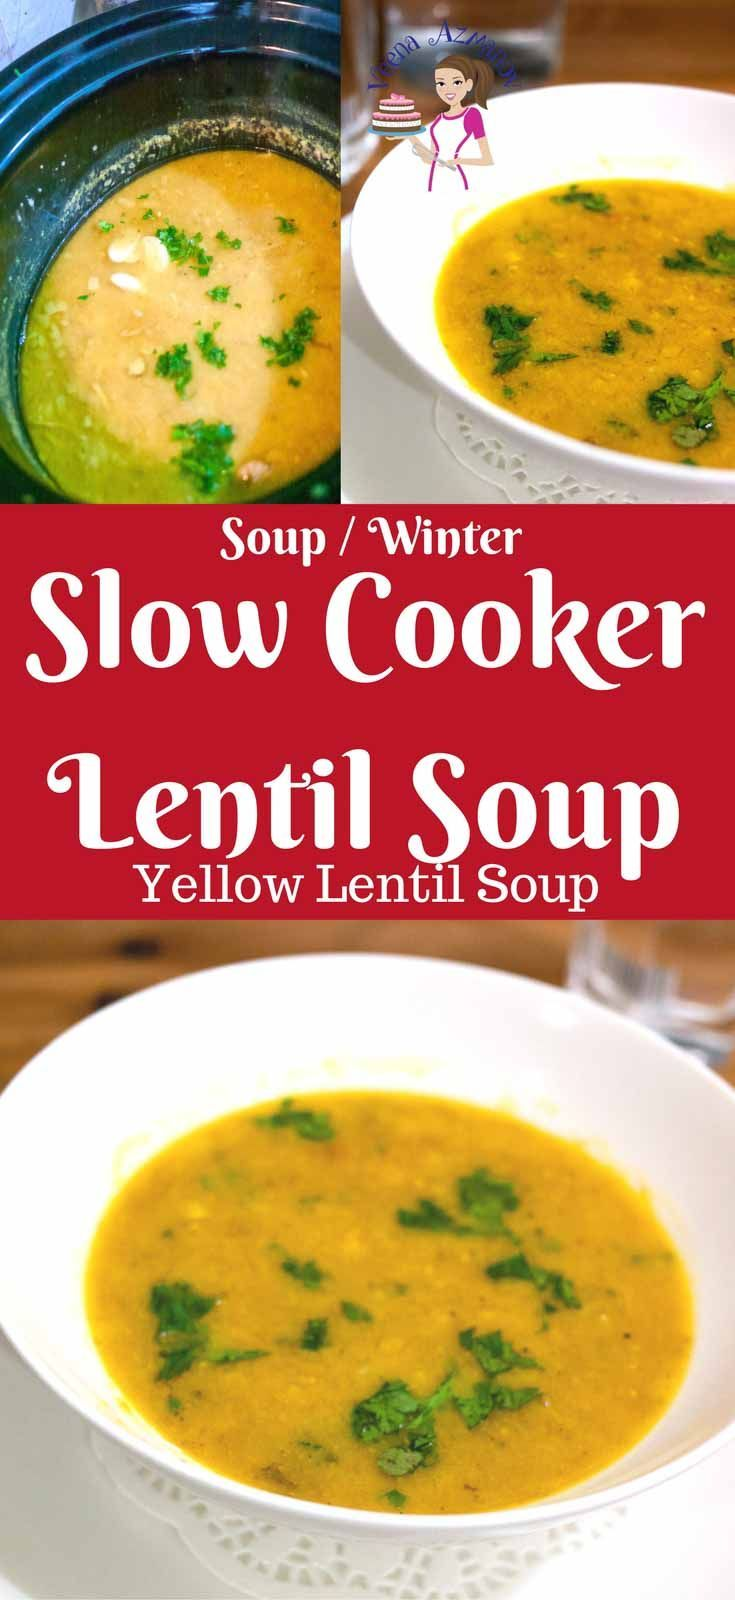 This slow cooker lentil soup is not just nutritious but hearty and flavorful. Serve it with crusty bread and a side salad for a simple week night dinner. The lentils are cooked until so soft you can barely see the grains. The fresh cilantro add so much more than just flavor. #lentil #soup #winter #comfortfood #soups #healthy #yellowlentil #souprecipes #cooking  #slowcooker via @Veenaazmanov #veenaazmanov veenaazmanov.com